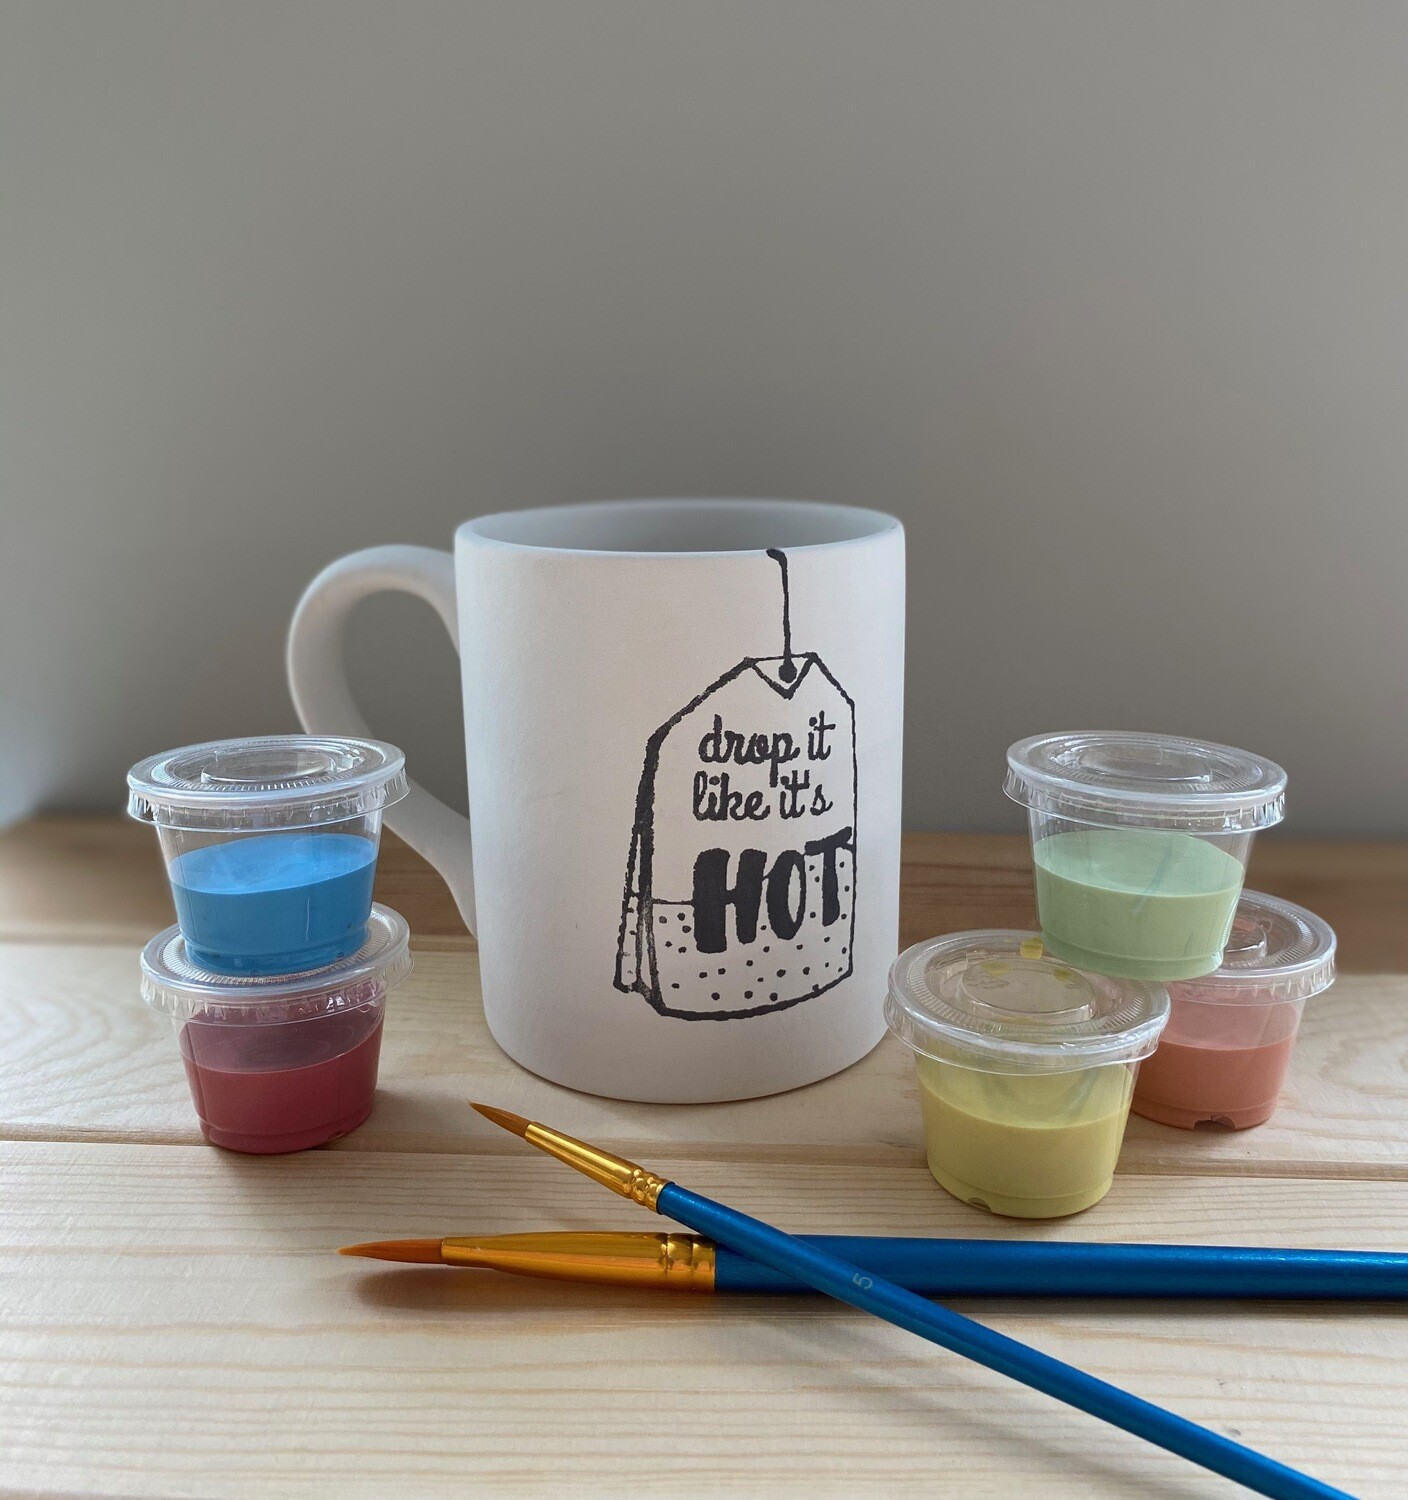 Take Home Coloring Book 12 oz  Drop it Like it's Hot Mug with Glazes - Pick up Curbside